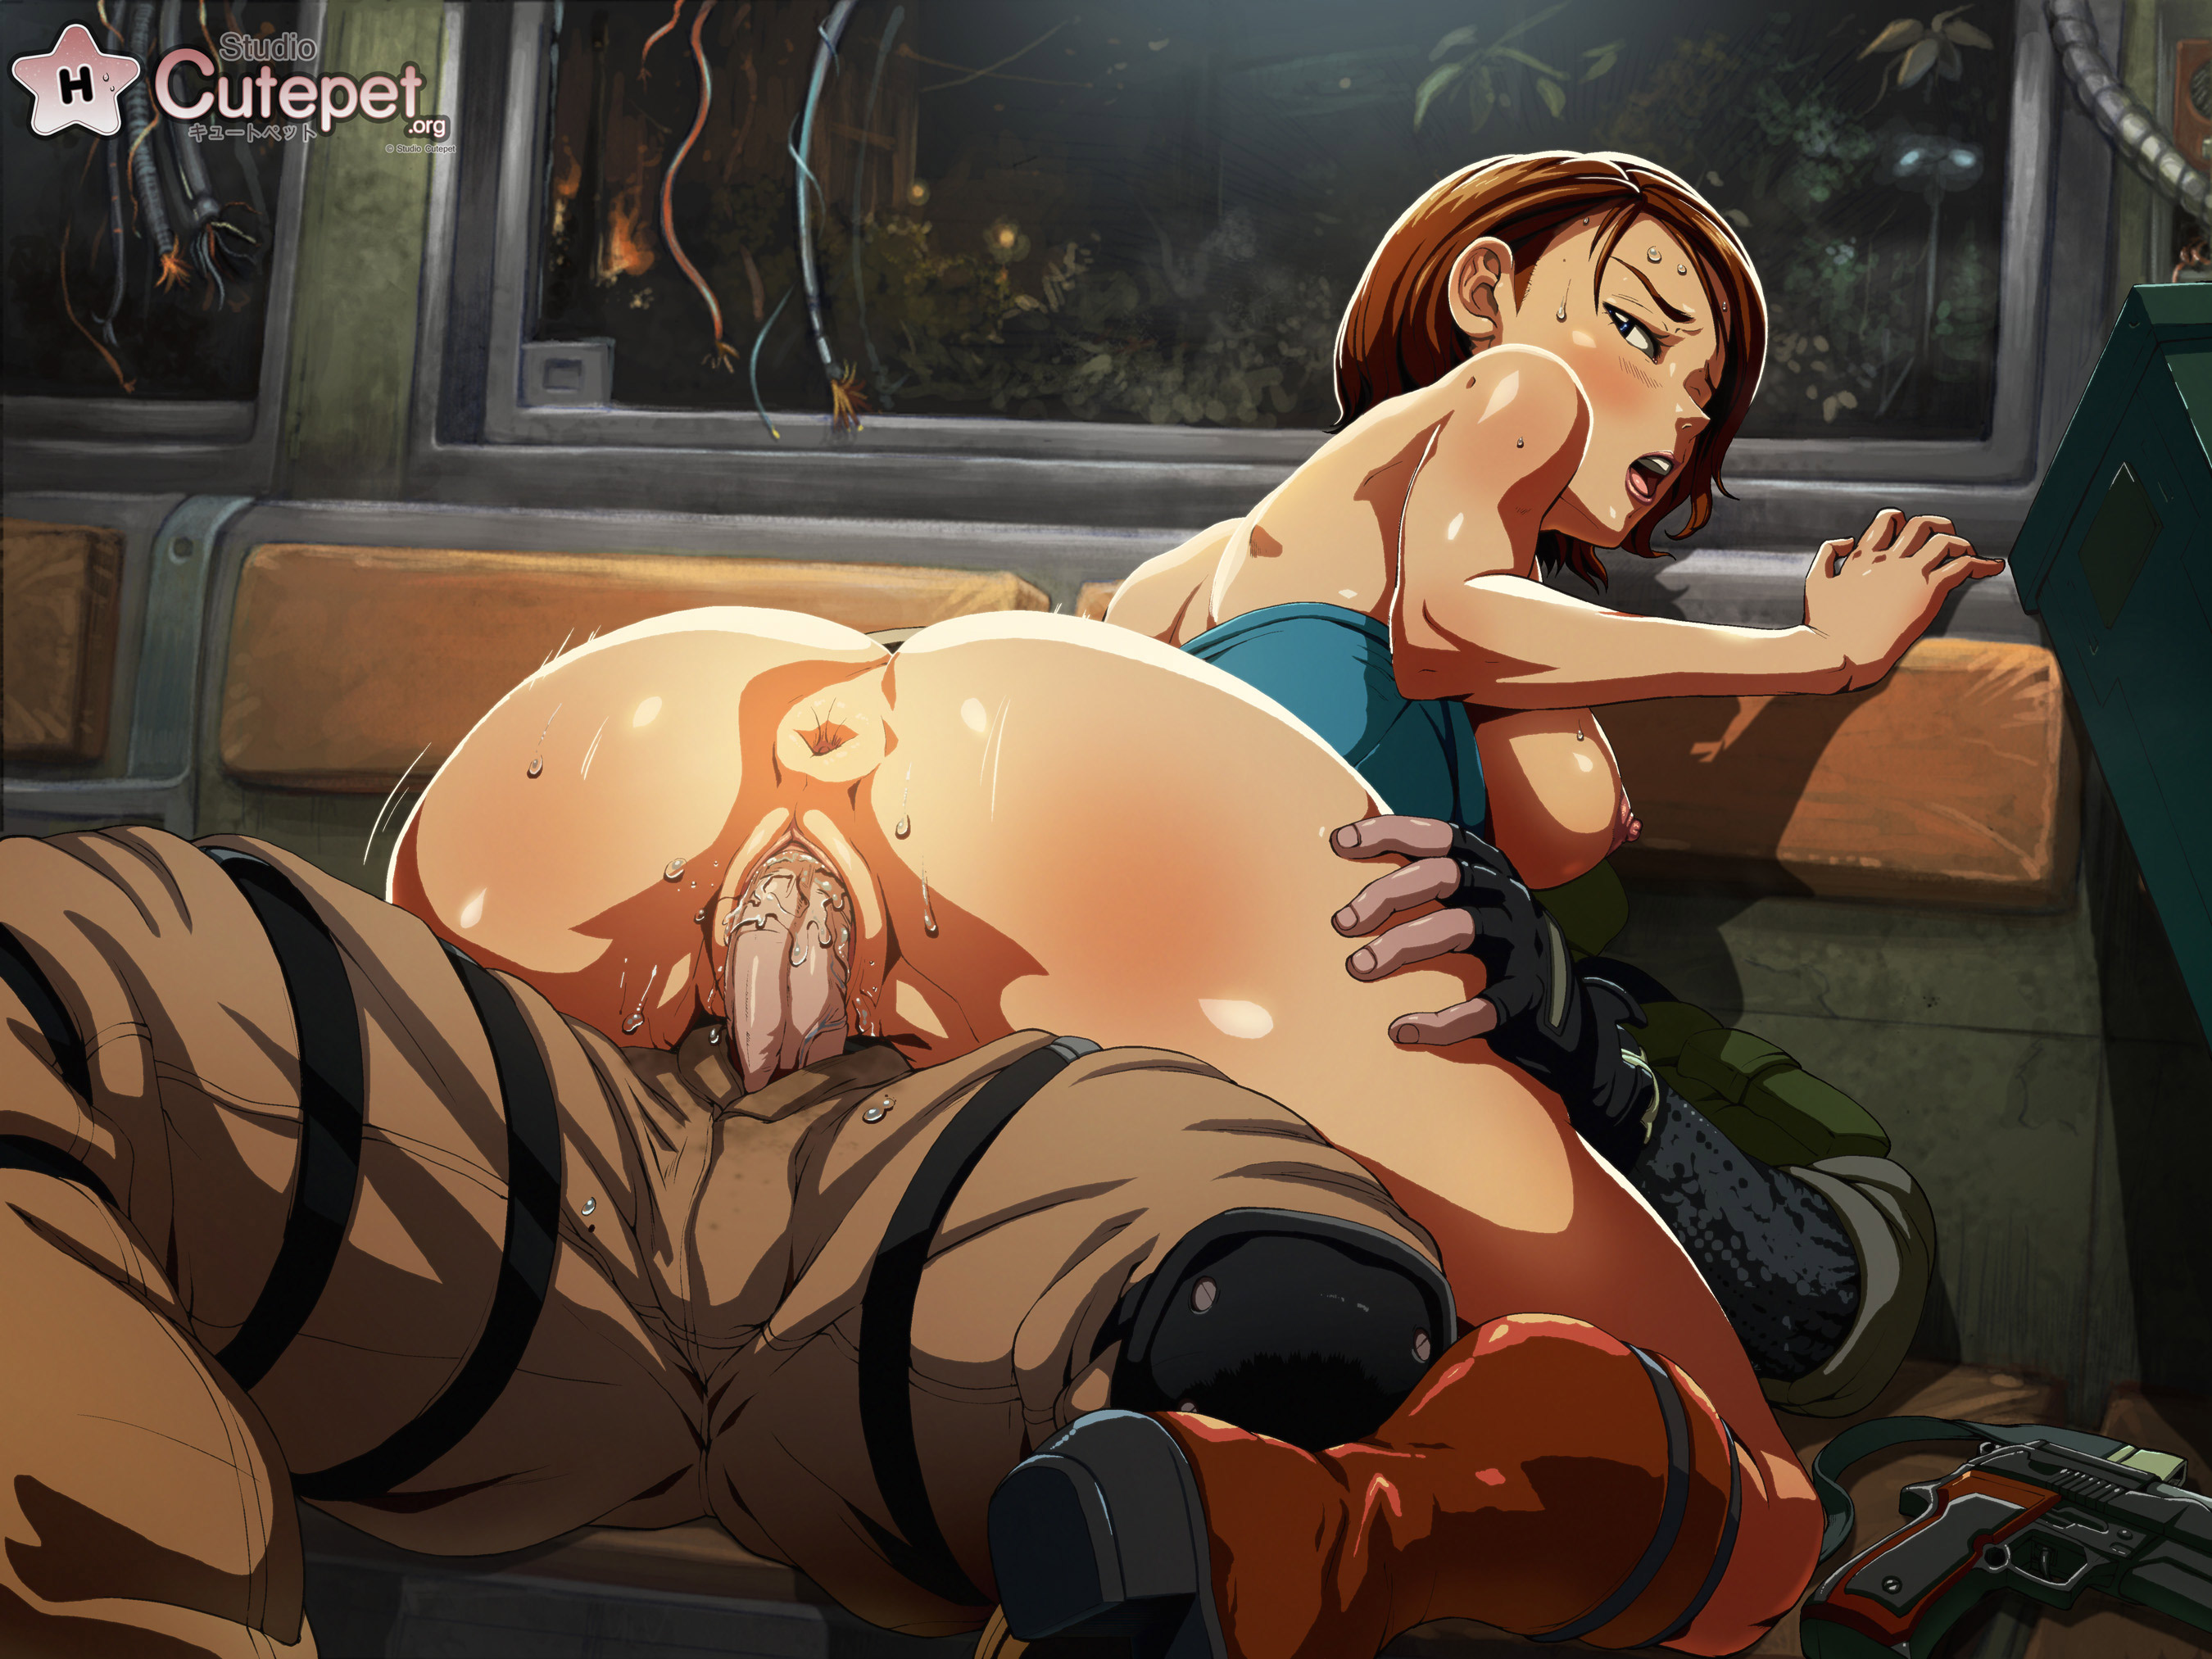 Raccoon girl fucked by demon hentai porn scene